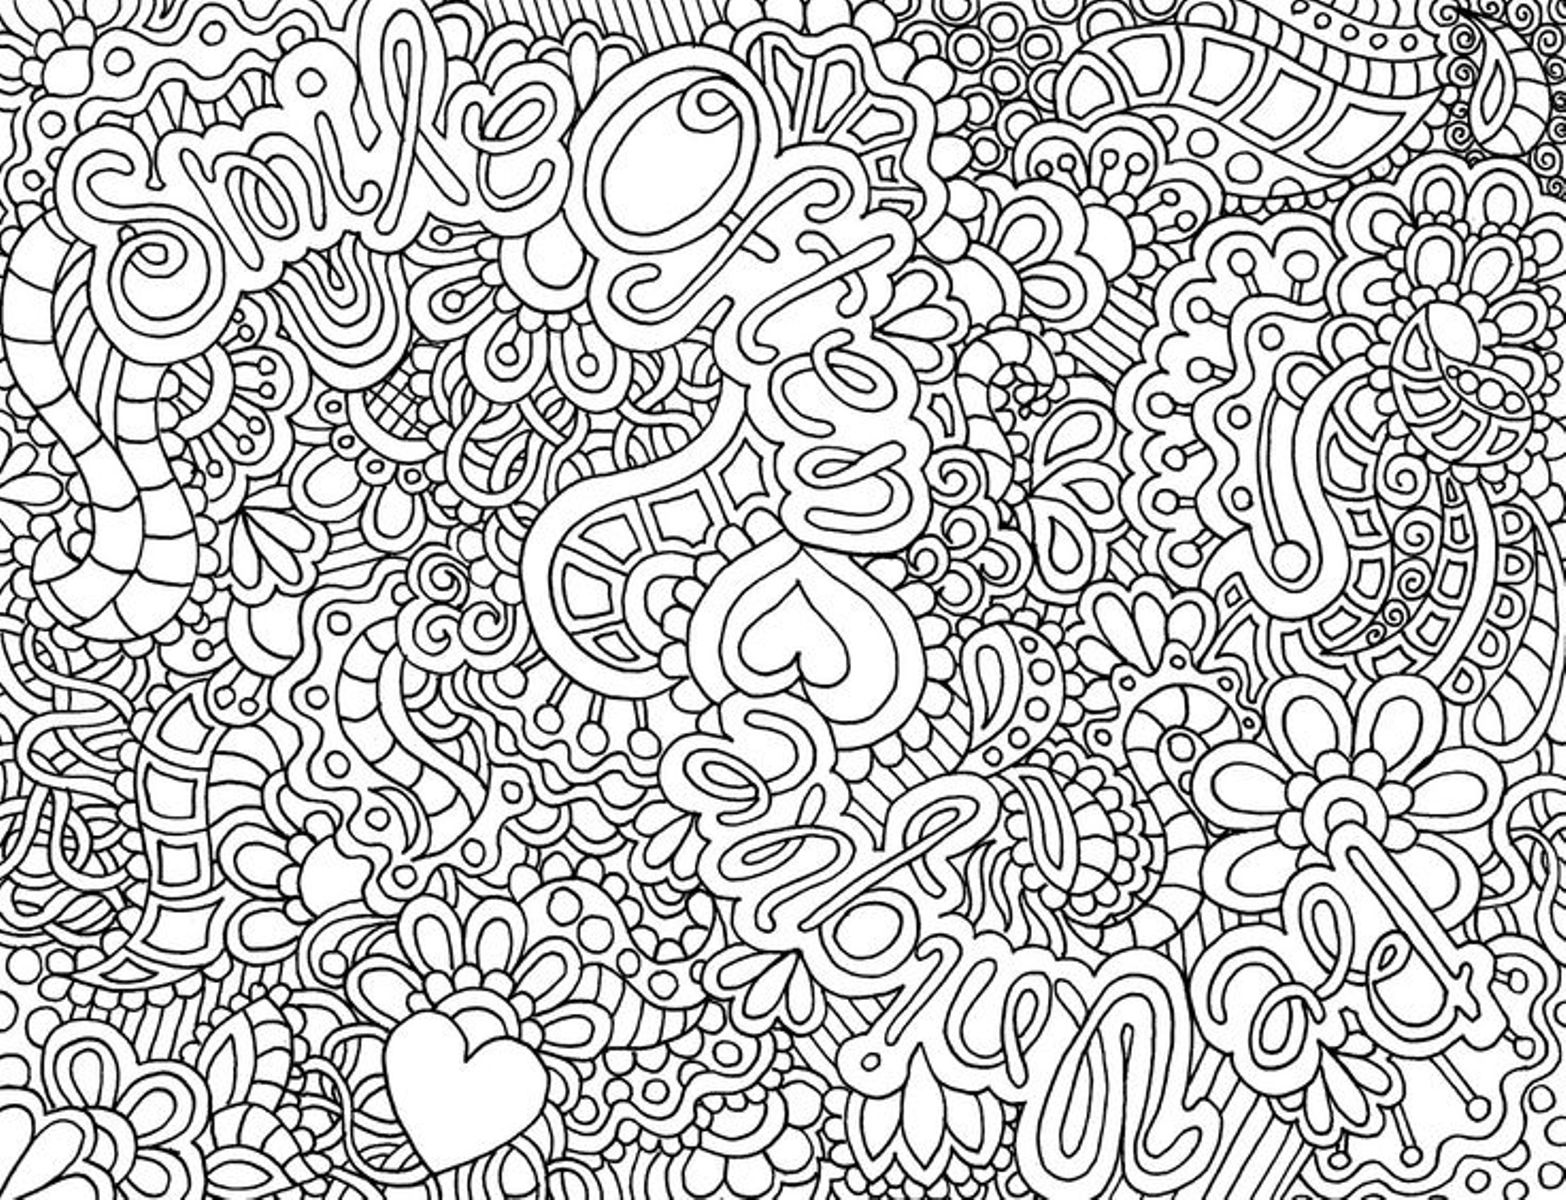 detailed coloring pages - Coloring Papges